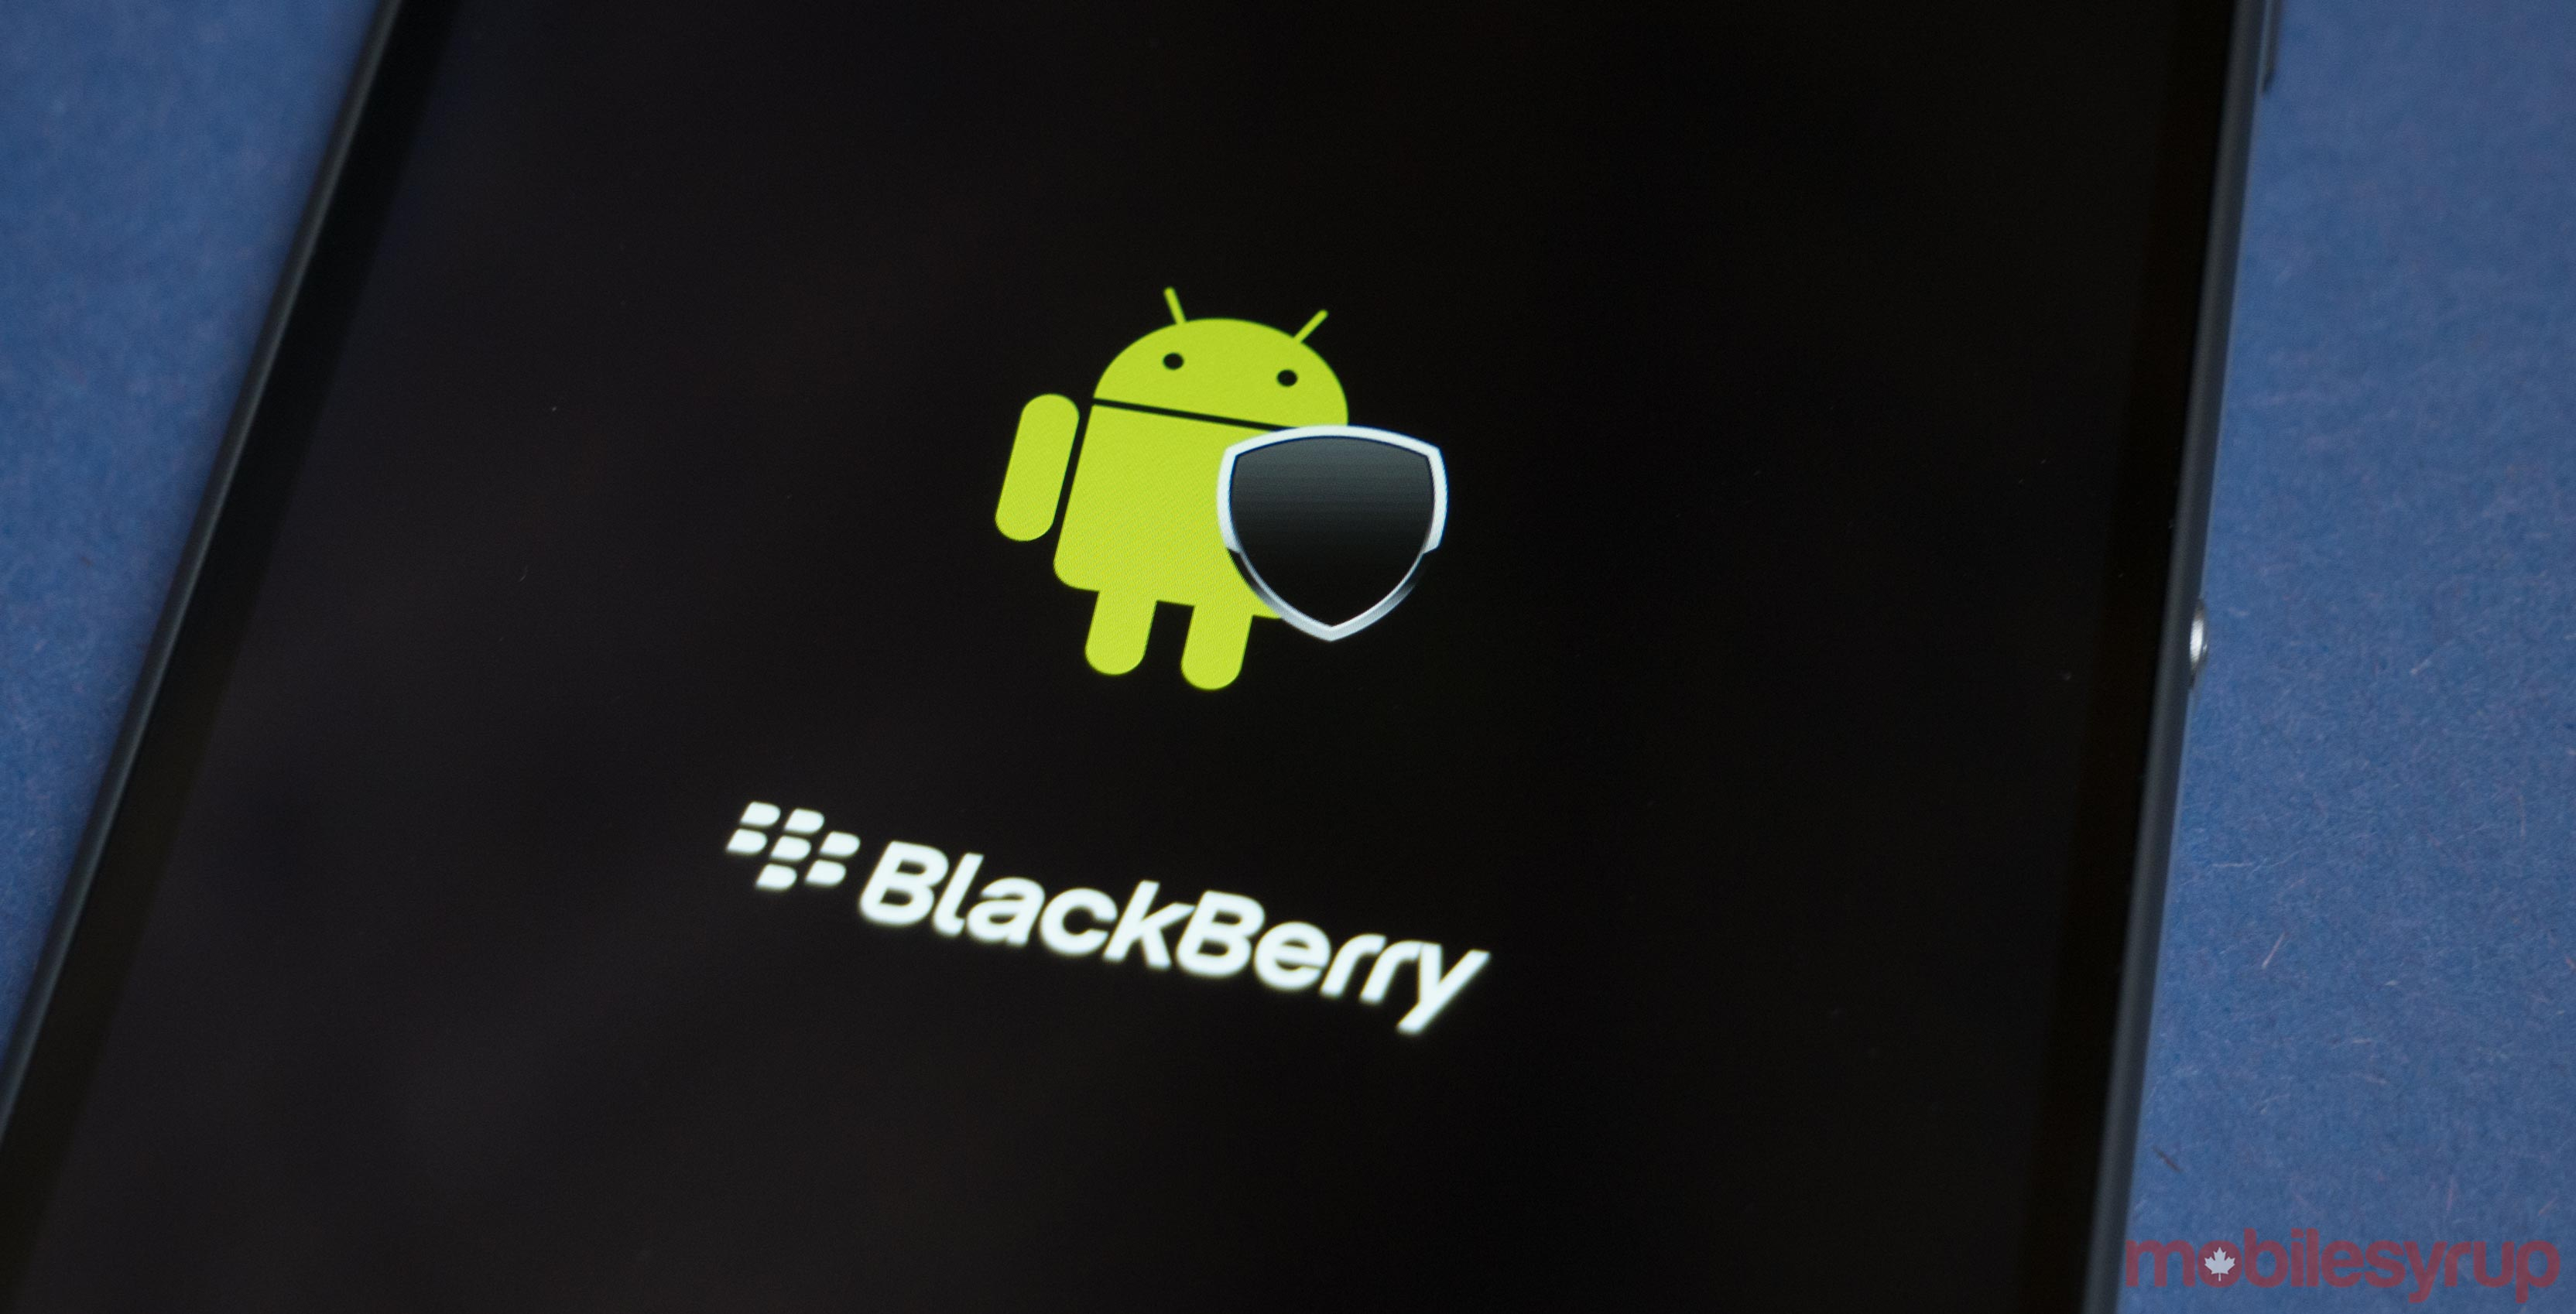 Blackberry shares up after beating Q2 estimates